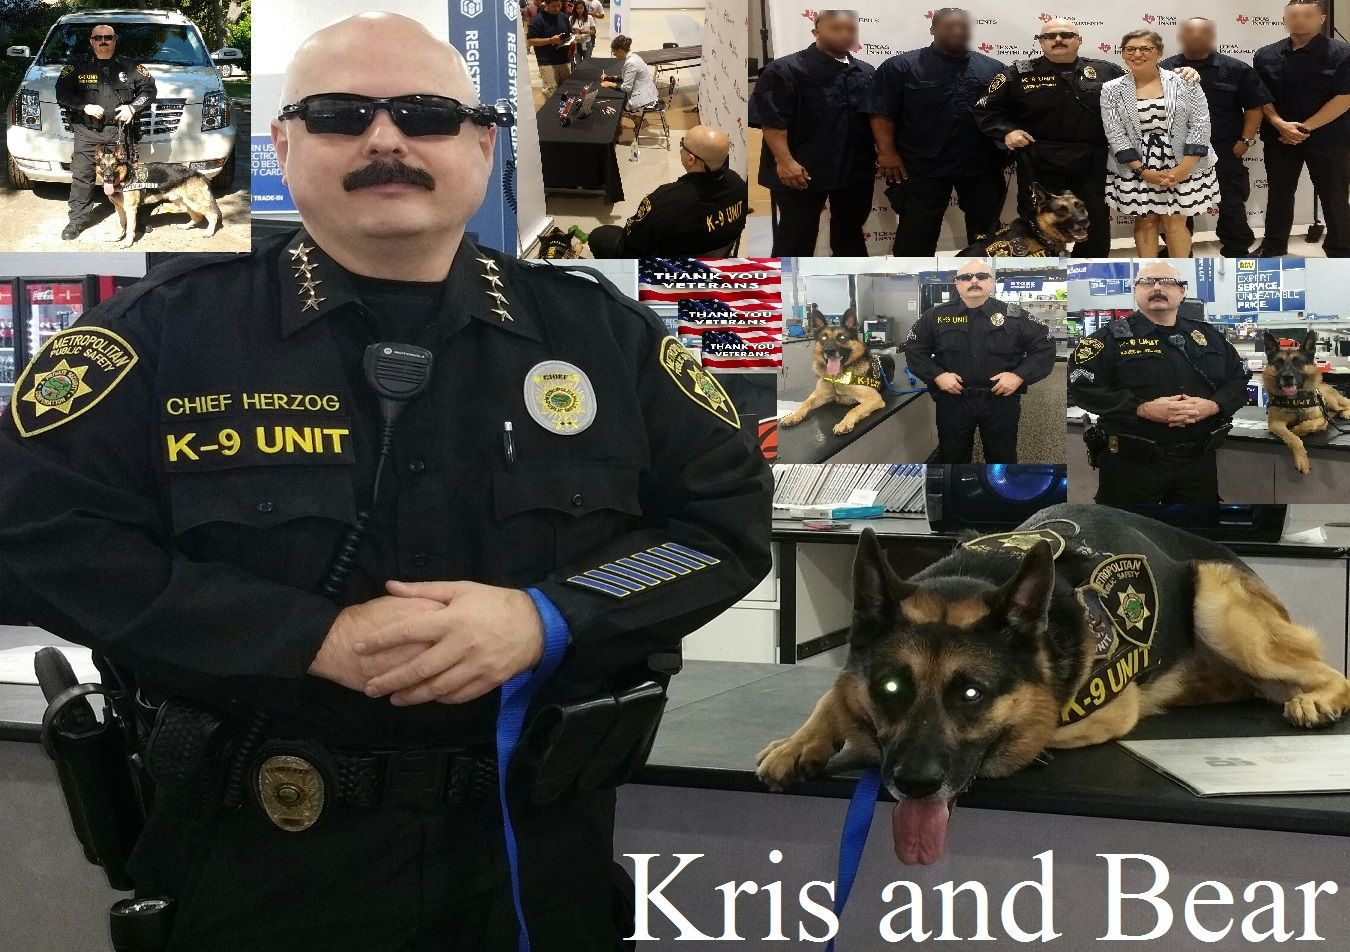 Famous celebrity bodyguard Kris Herzog of The Bodyguard Group of Beverly Hills security 90210 CNN news 2017 CHIEF KRIS AND BEAR The Bodyguard Group of Beverly Hills 007